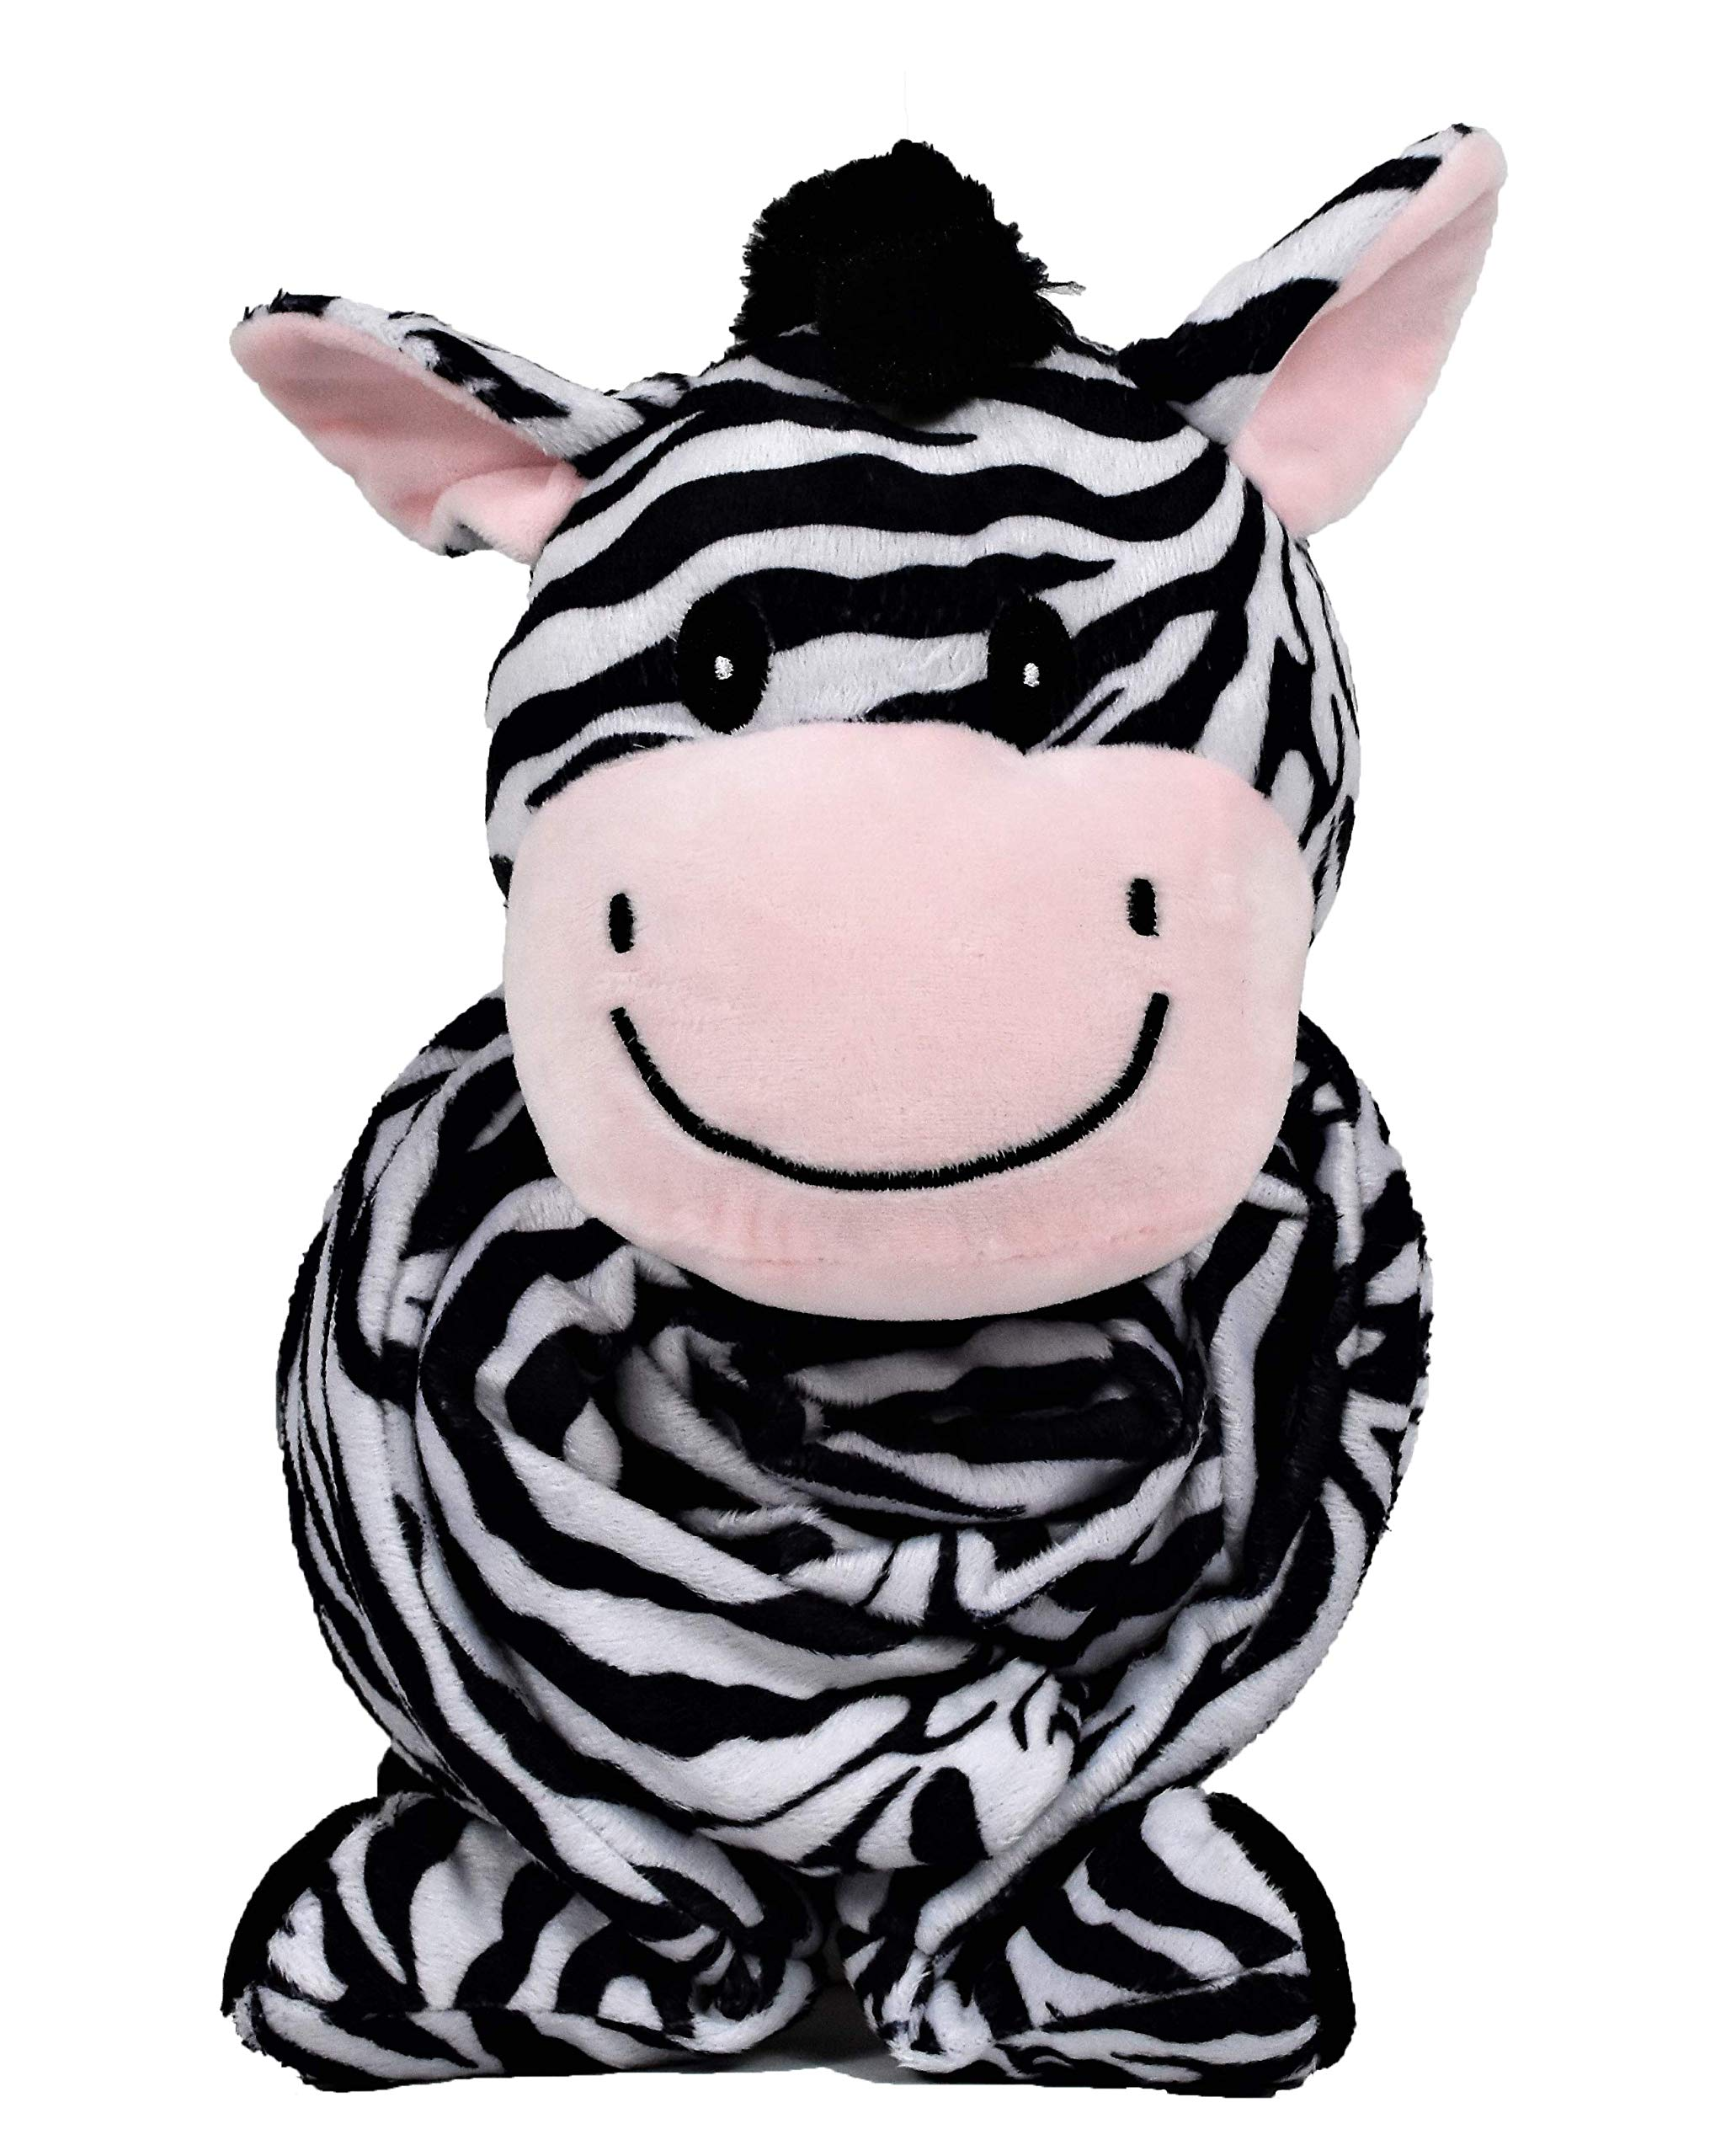 """SNUGGIES Zebra Stuffed Animal Blanket & Cuddly Pillow 2-in-1 Combo – Super Soft and Cuddly Baby Zebra Blanket 37"""" x 30"""" and Zoo Plush Toy 14"""" x 8"""" – Perfect Unisex Baby Shower Gift by Snuggies"""